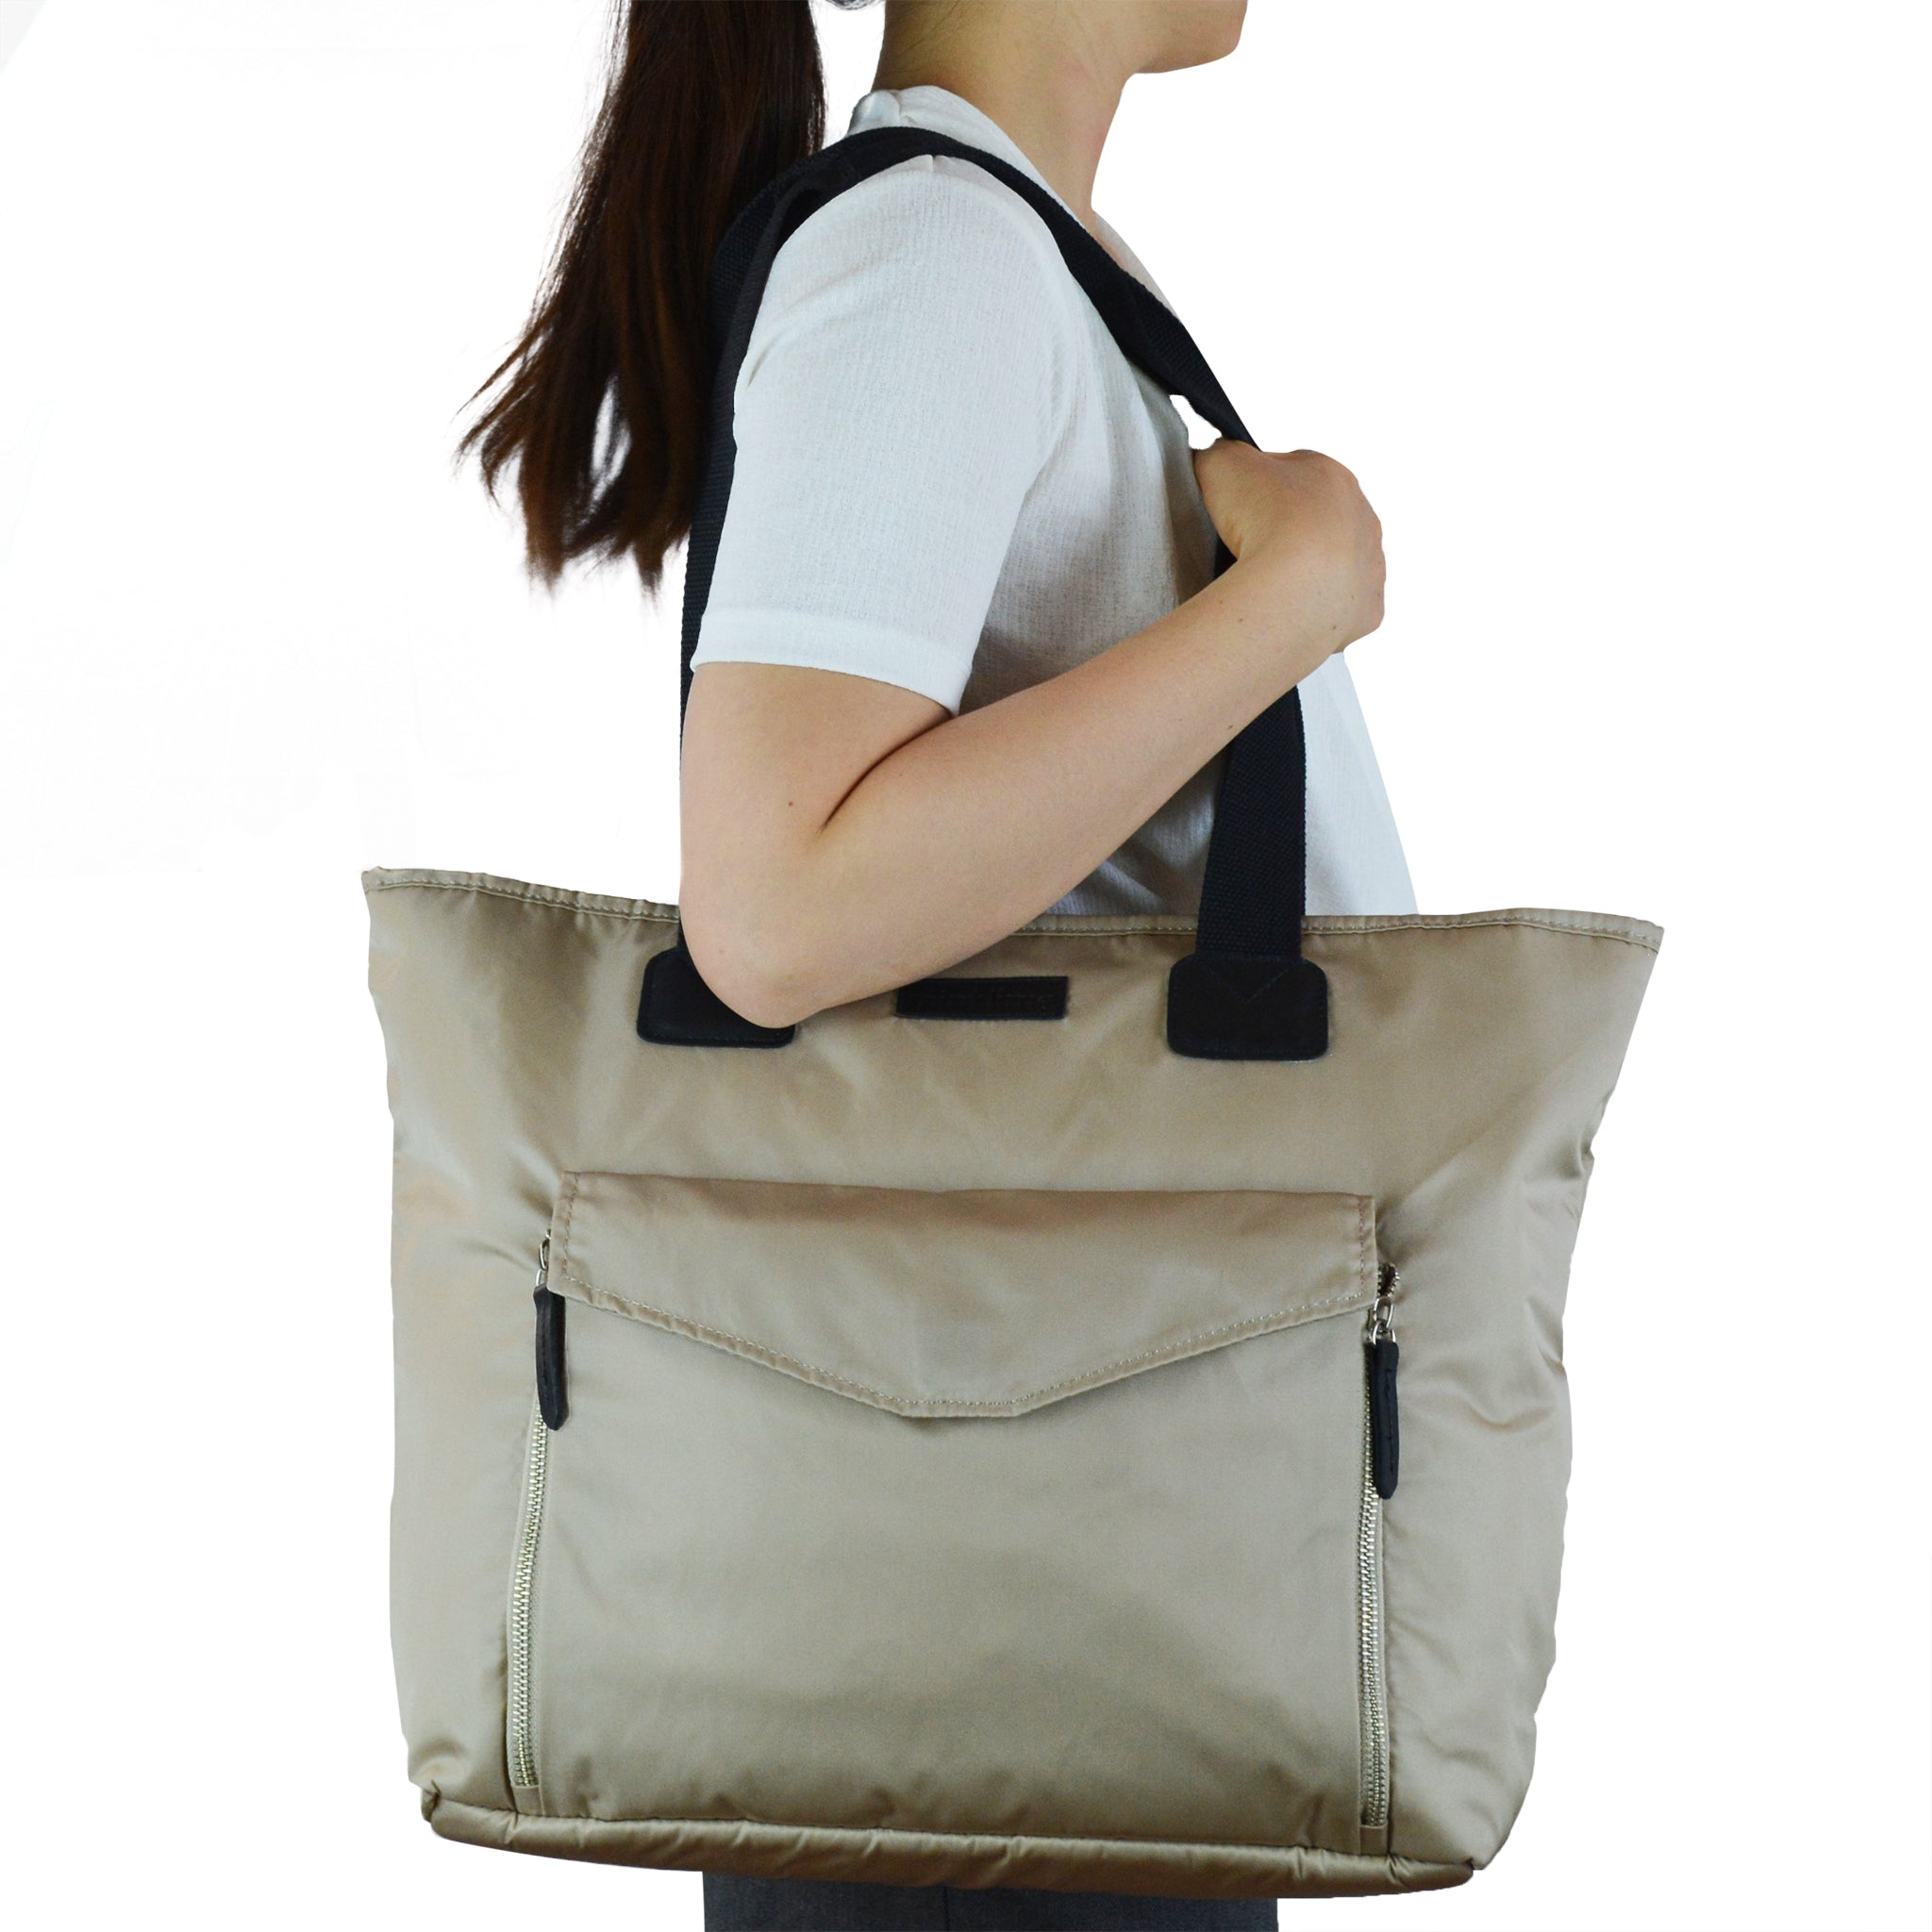 ... tote interior  Toting   Doting - Black 17fcb75a3d2ce